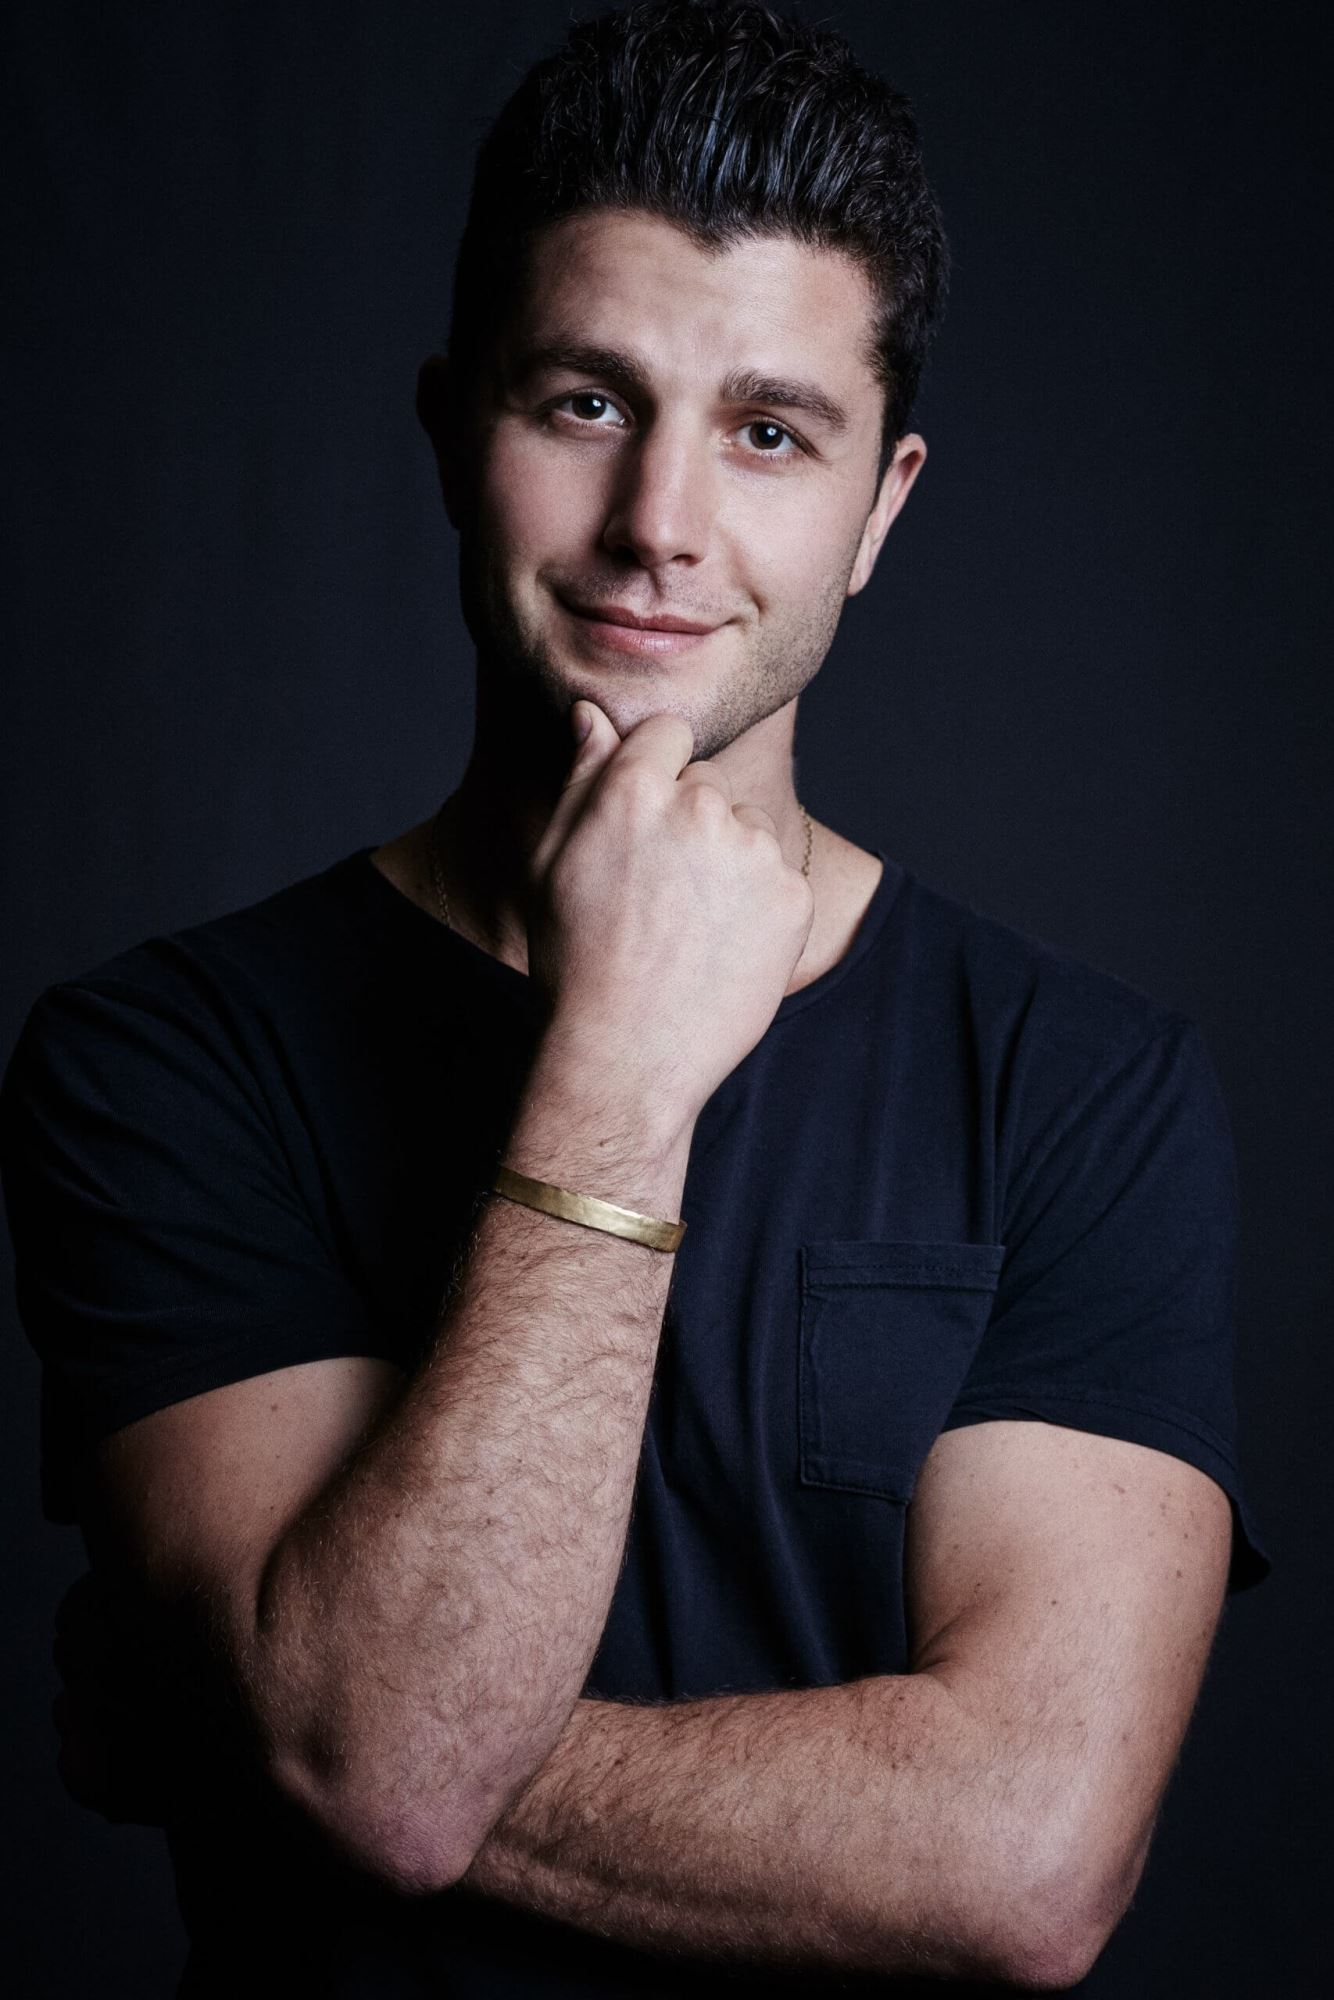 Ben Nemtin of MTV's 'The Buried Life' to speak at free Make It OK community event